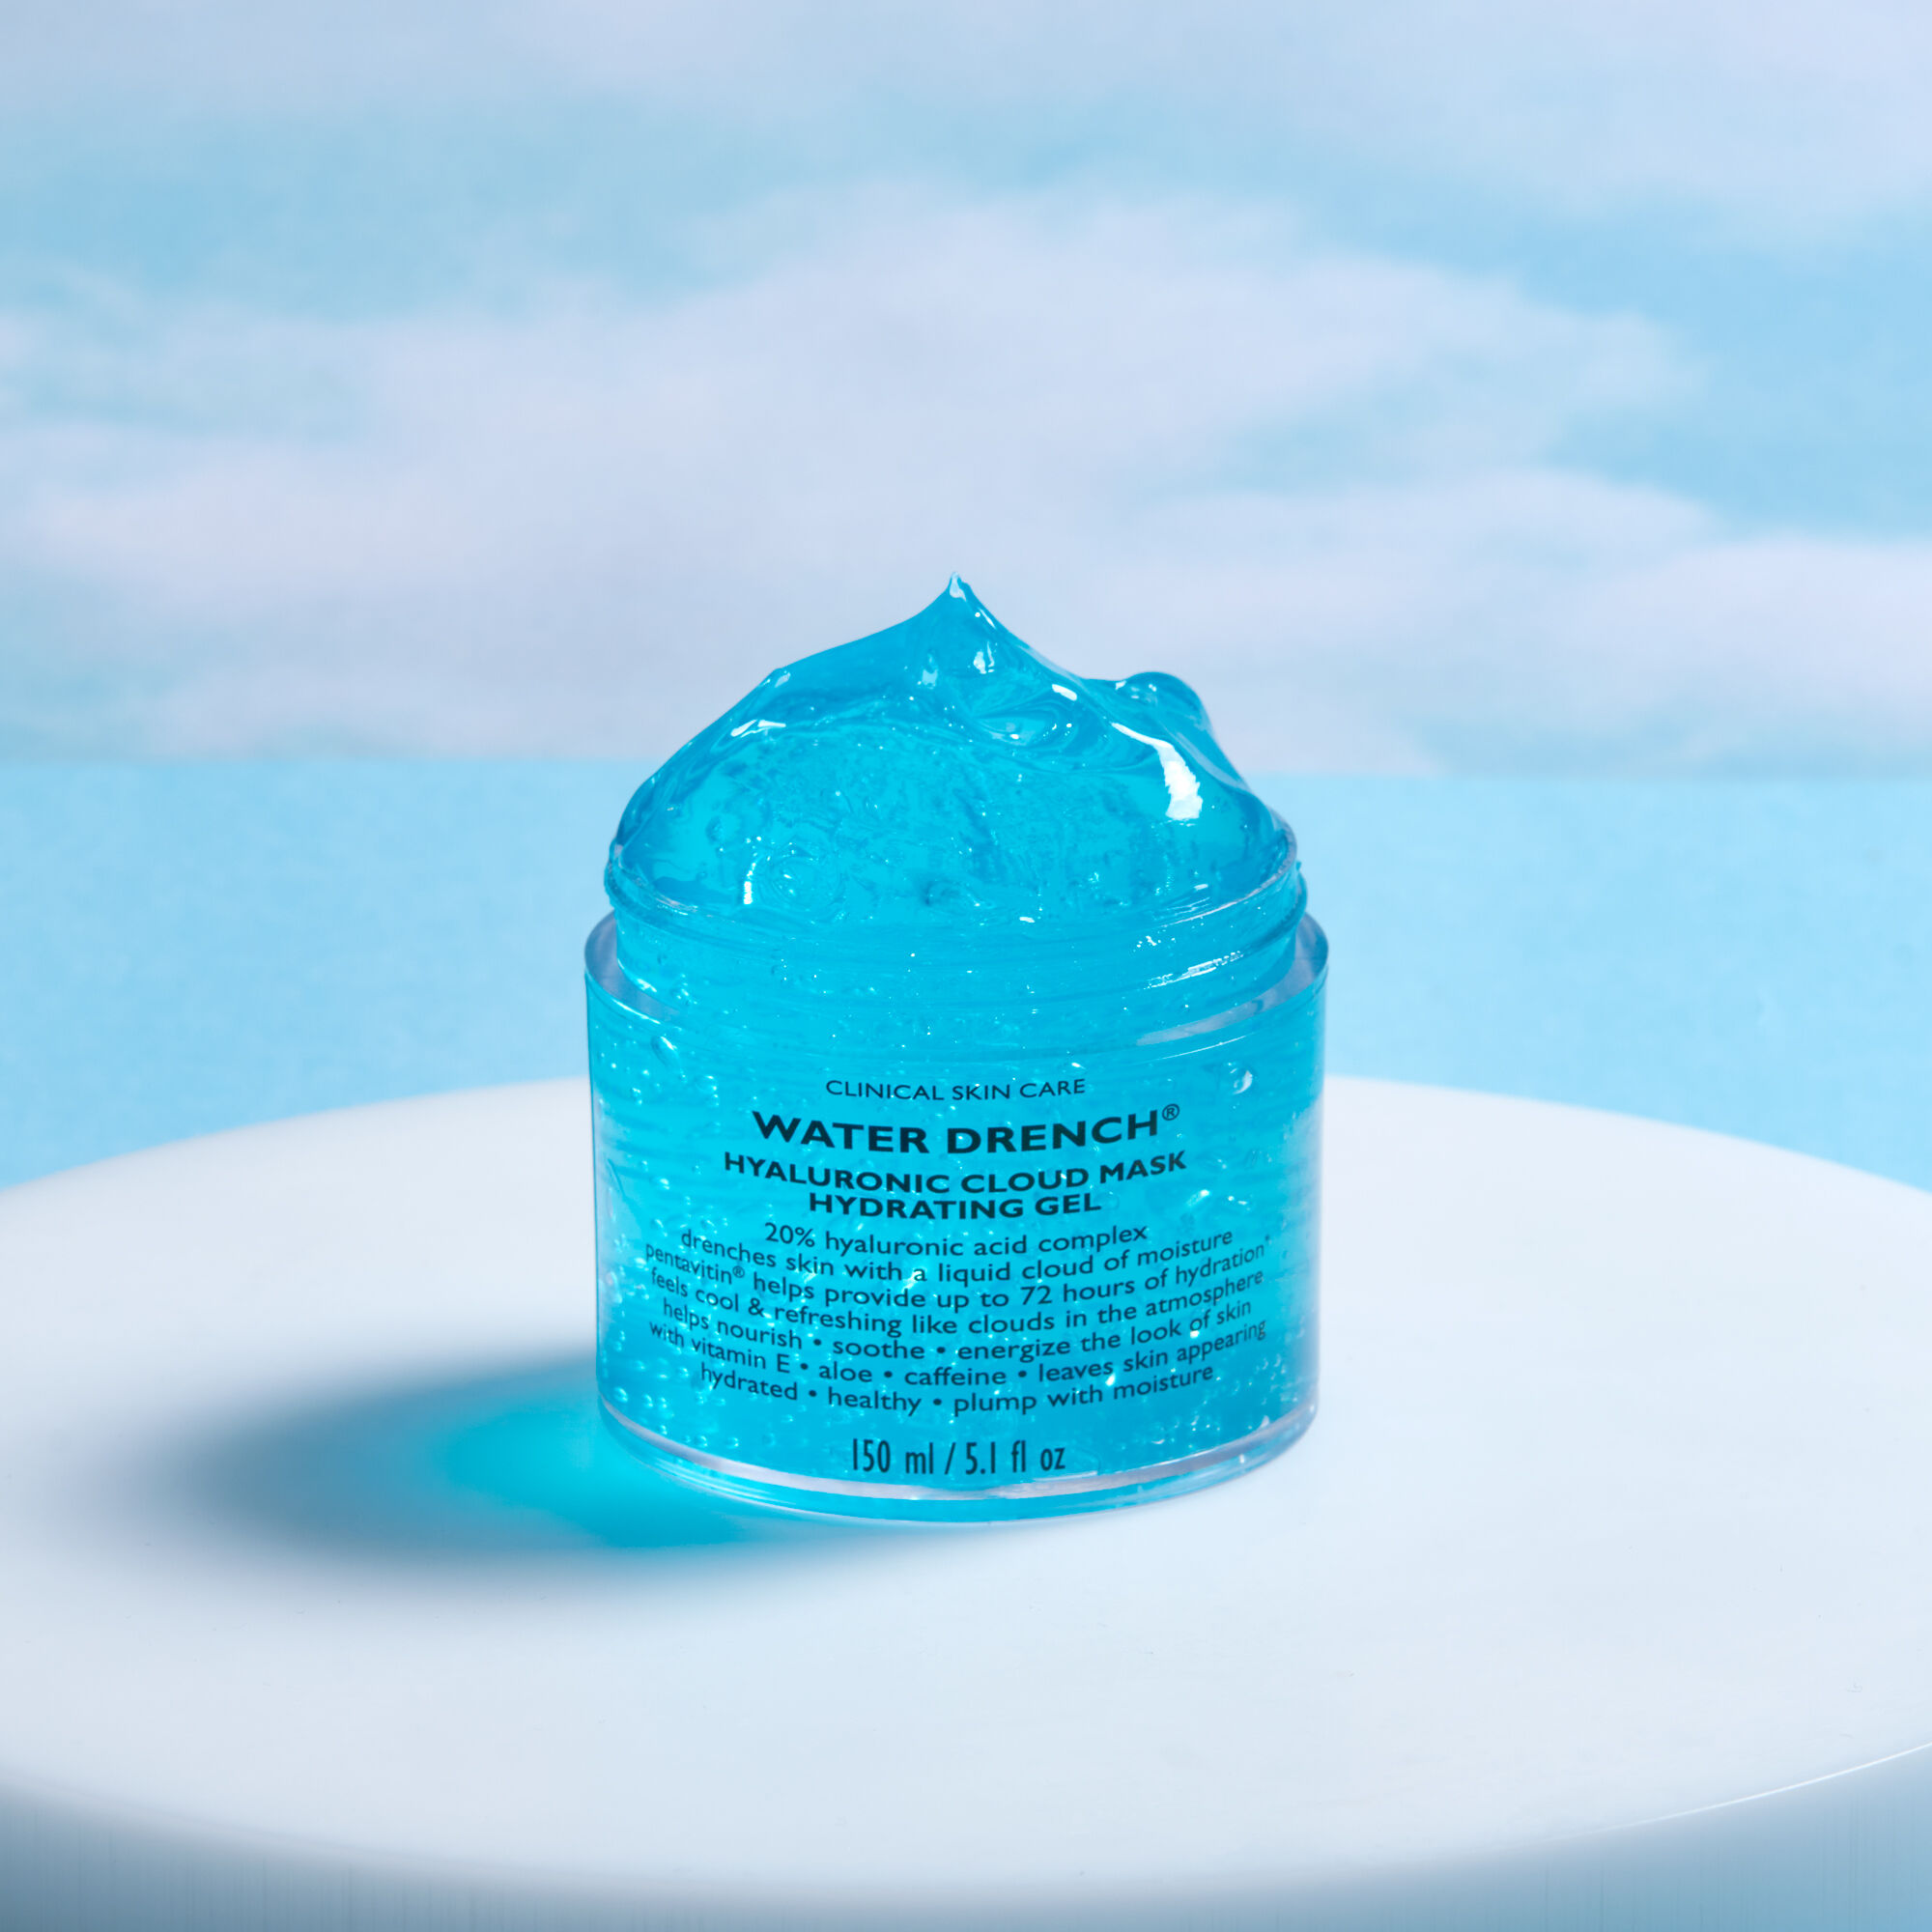 Peter Thomas Roth Water Drench Hyaluronic Cloud Mask